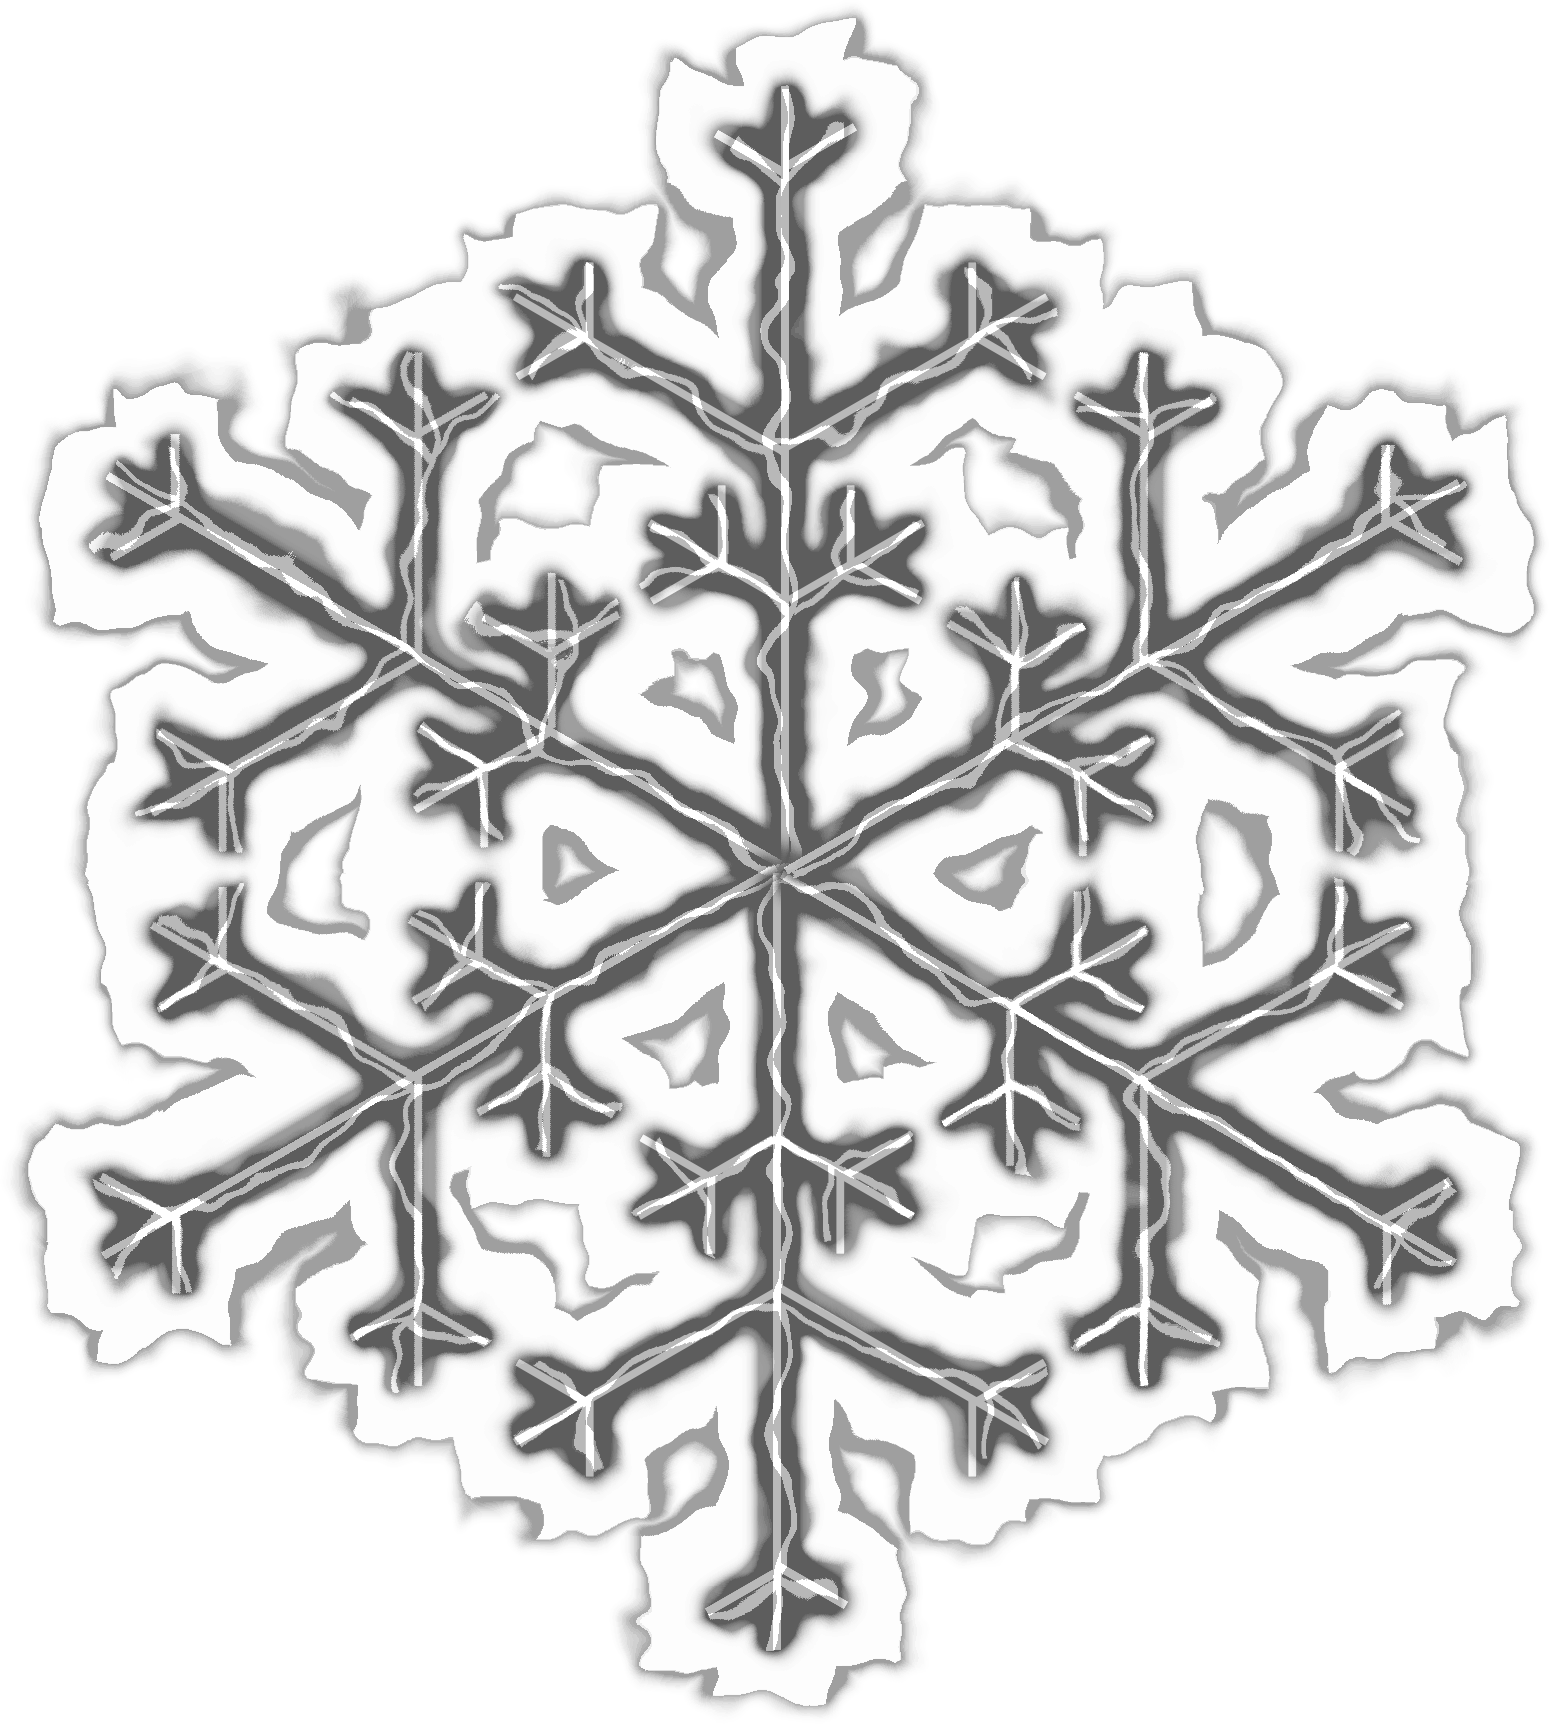 Microsoft office clipart snowflake black vector freeuse download Clipart - Snowflake vector freeuse download